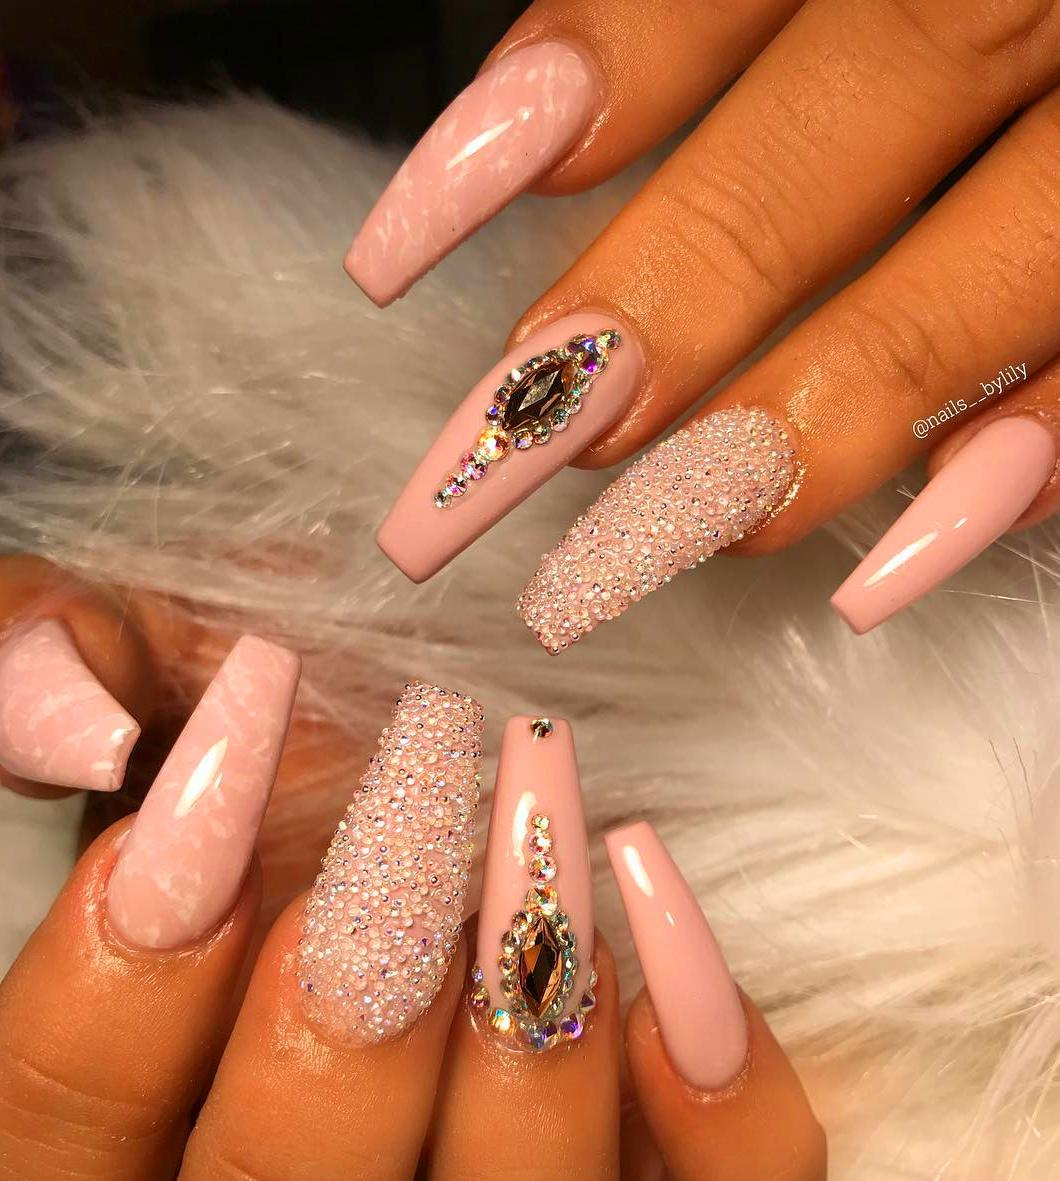 30+ Cute Acrylic Nails Designs Ideas For You